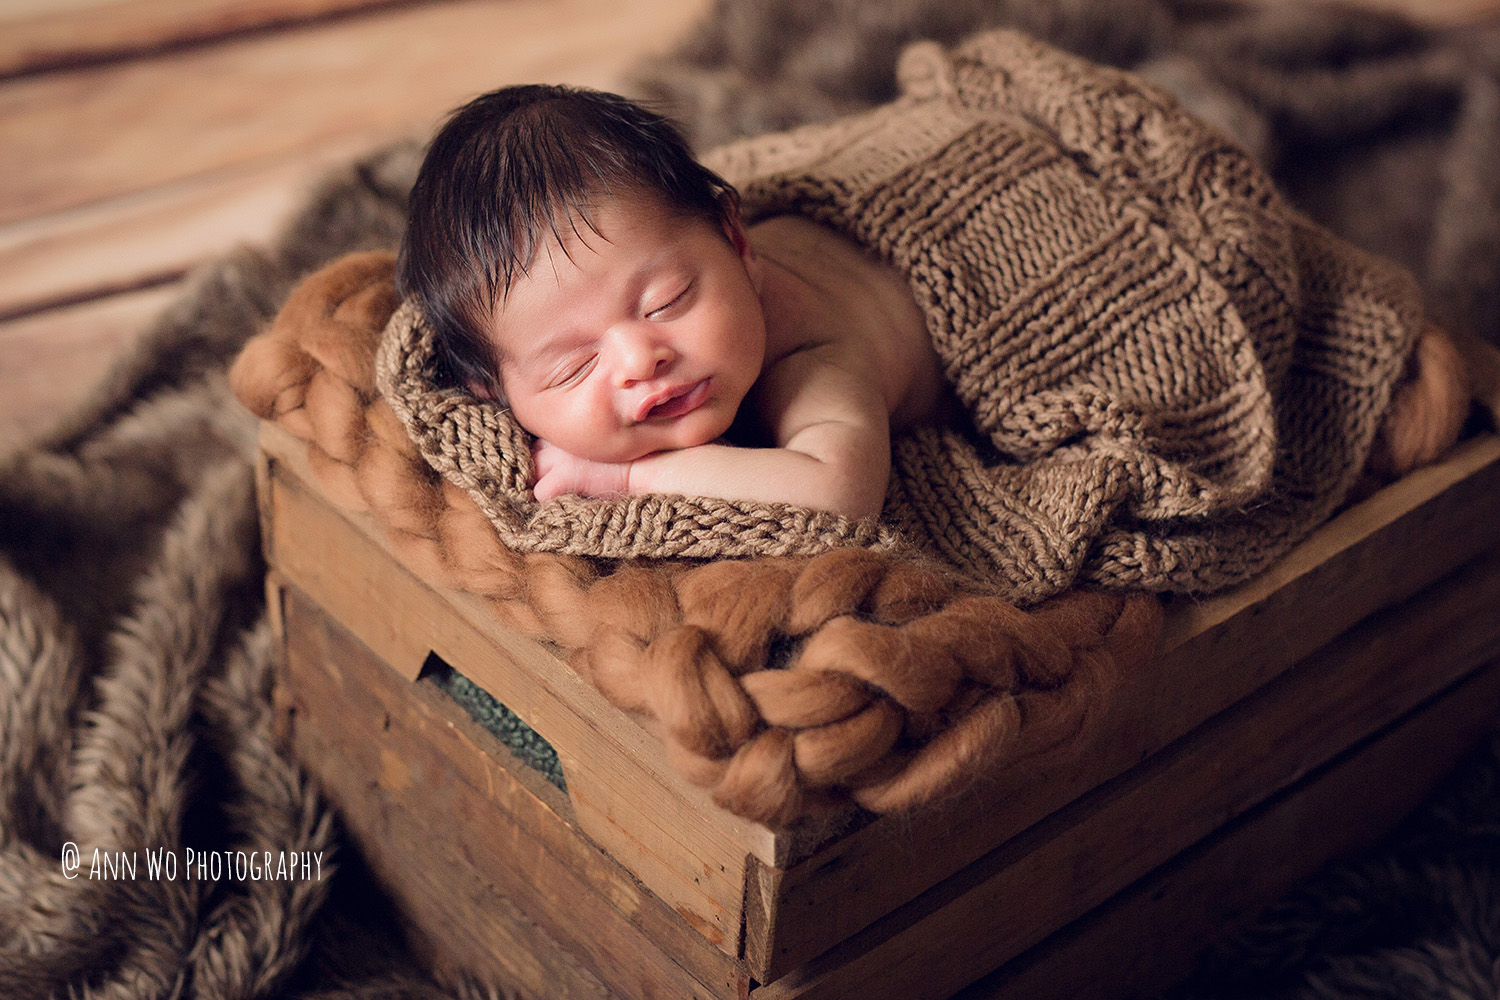 064-newborn-photography-at-home-ann-wo-london-30.JPG